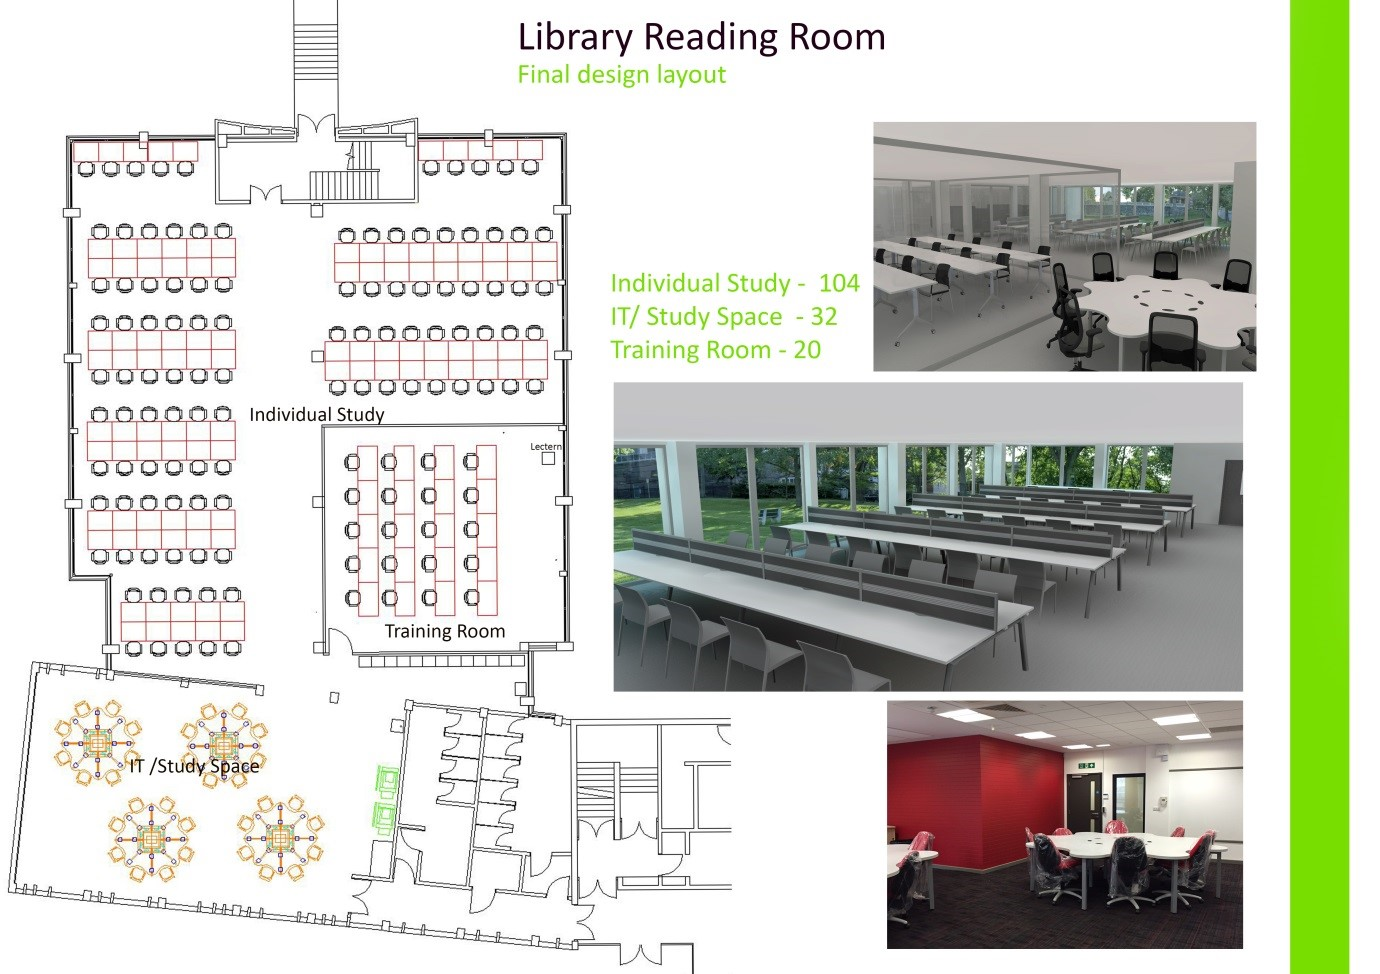 A plan of the library reading room showing 104 individual study spaces, 32 IT study spaces and a training room of 20 places.